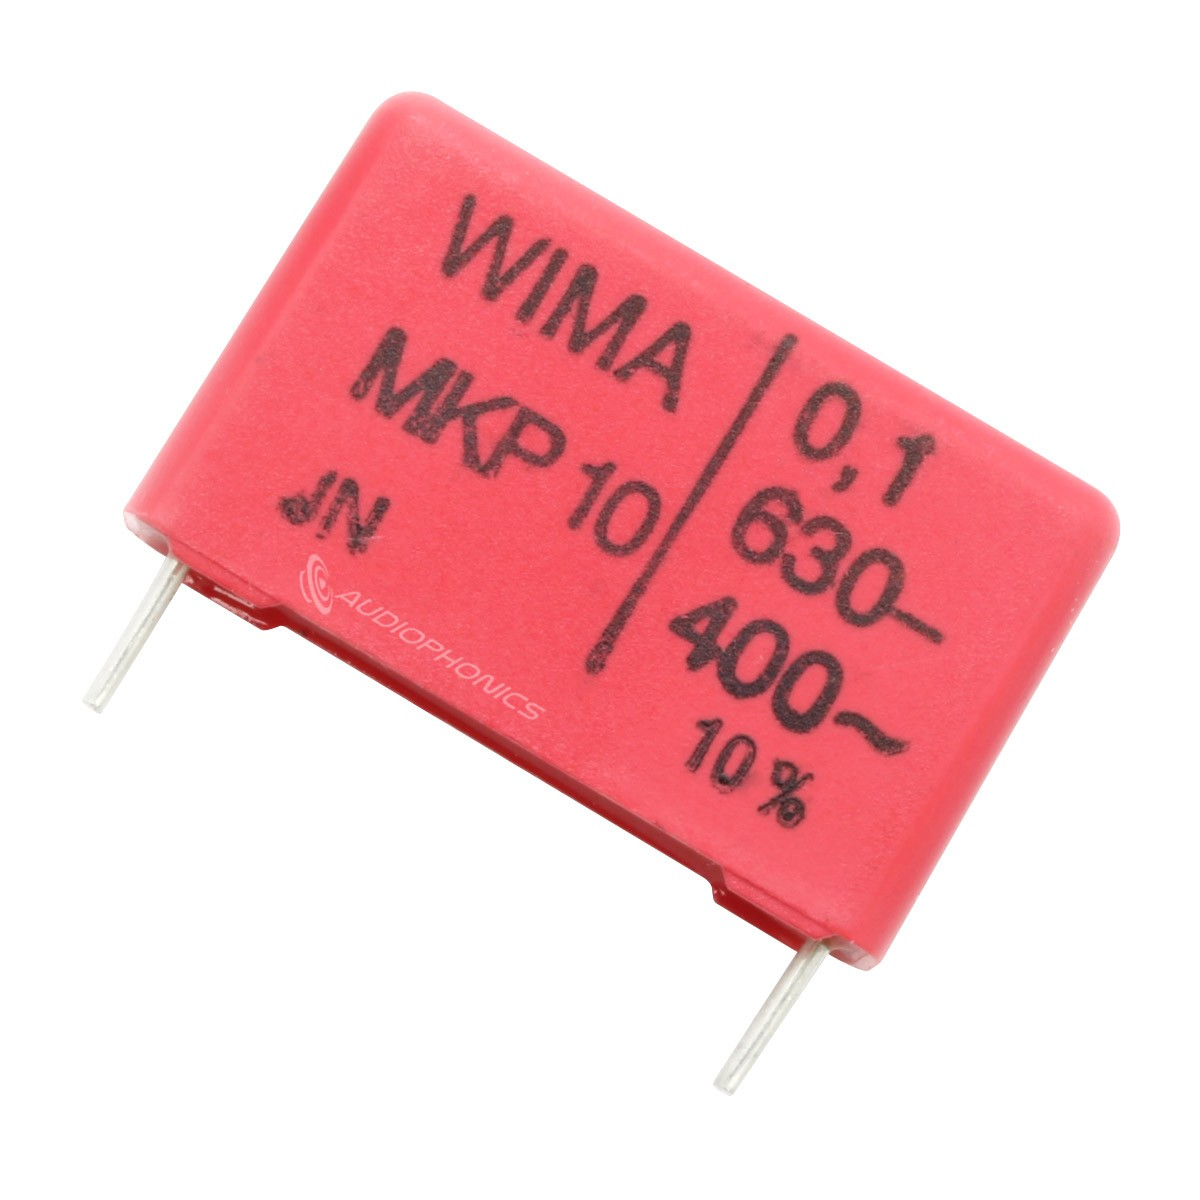 WIMA MKP 10 Polyester Capacitor 27,5mm 250V 1µF